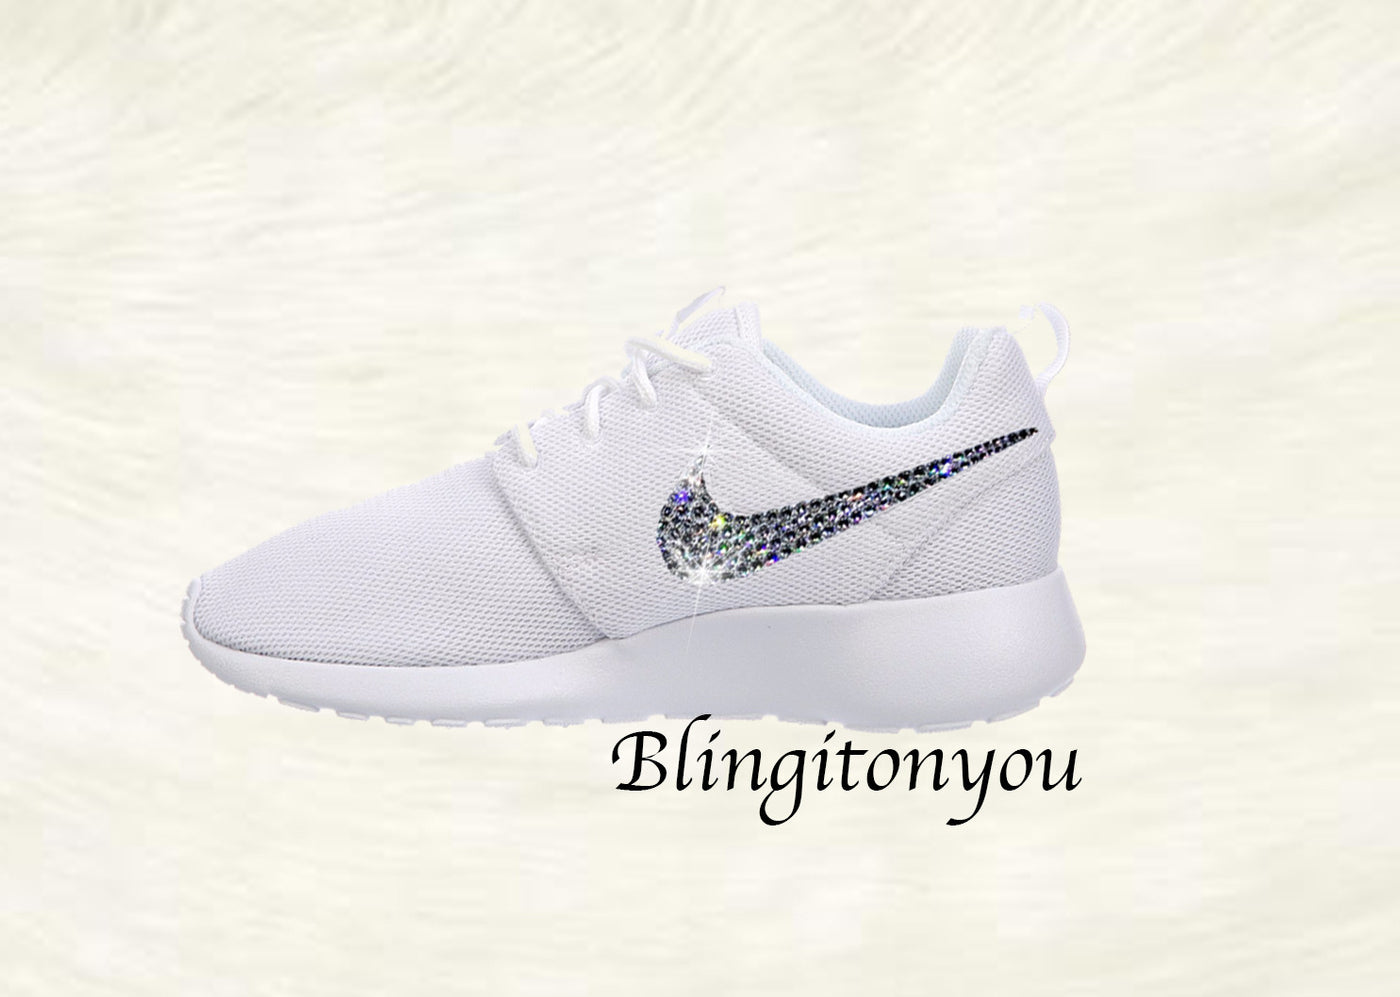 820a44871cd7 ... Swarovski Nike Shoes Women s Nike Roshe One White Customized with  Swarovski® Xirius-Rose Cut ...